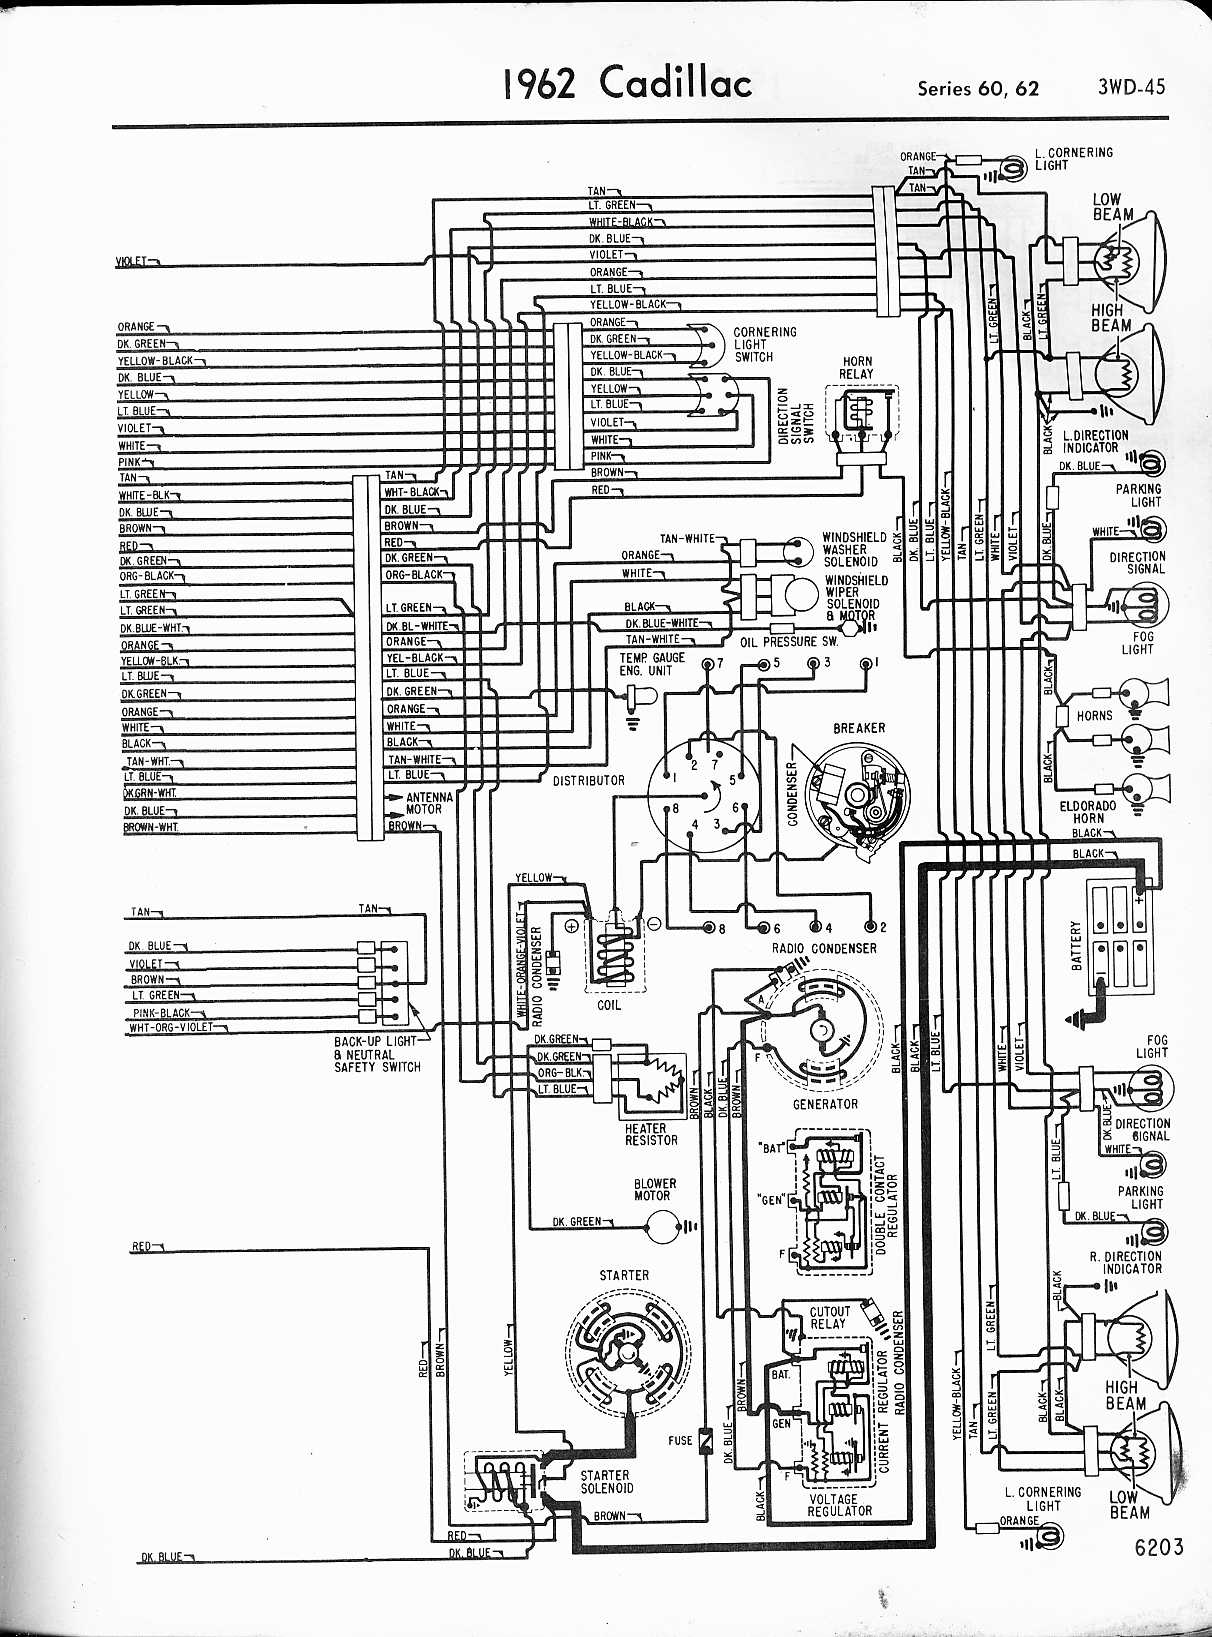 Cadillac Wiring Diagrams 1957 1965 2003 Cadillac Wiring Diagrams 1966  Cadillac Convertible Wiring Diagram